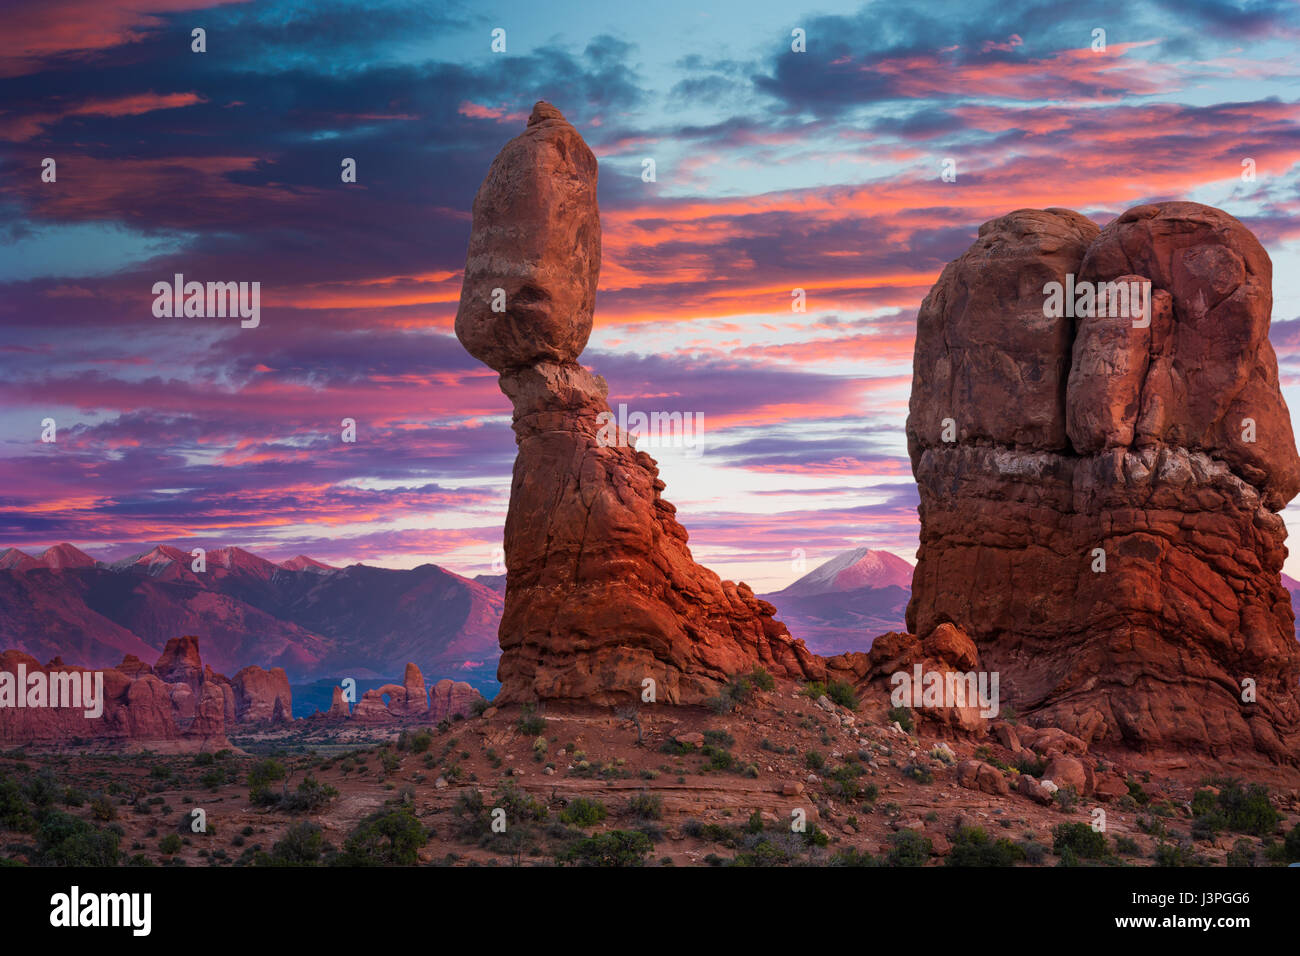 Balanced Rock is one of the most popular features of Arches National Park, situated in Grand County, Utah, United - Stock Image